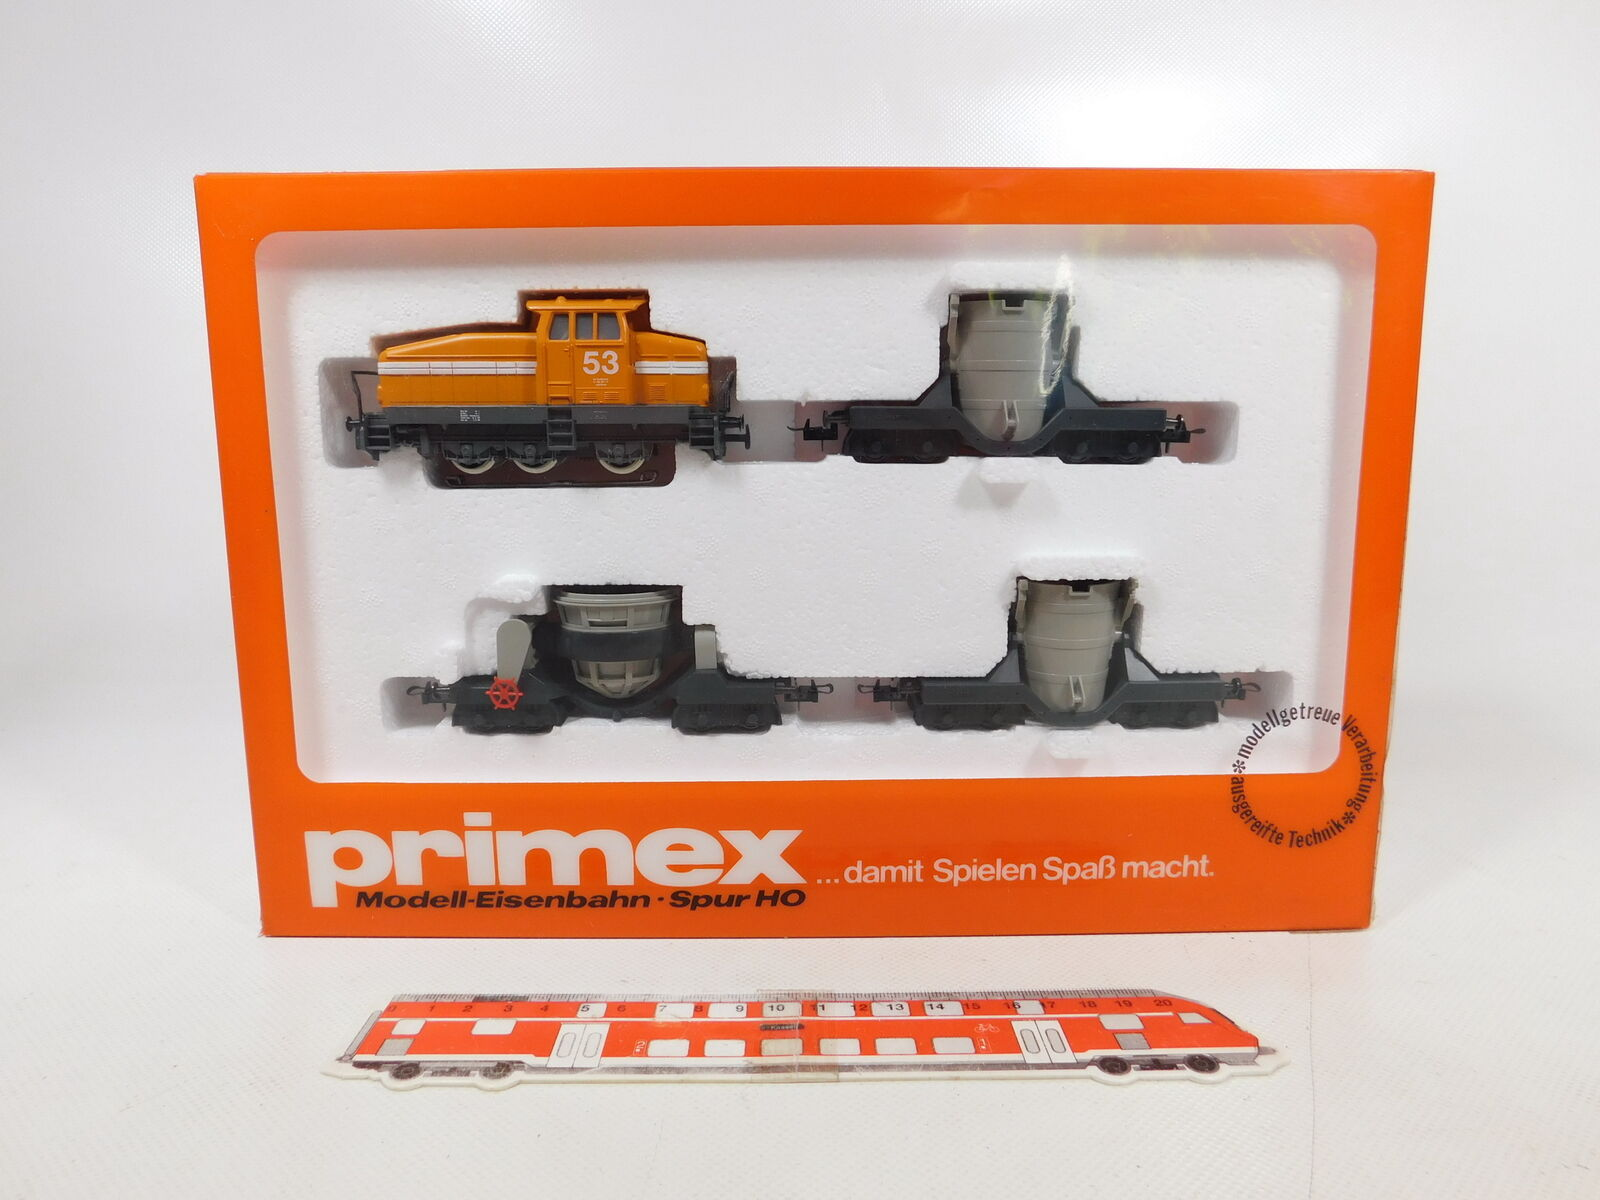 CA862-2  Primex Märklin H0 AC 2704 steel mill train, NEUW + OVP (Unopened)